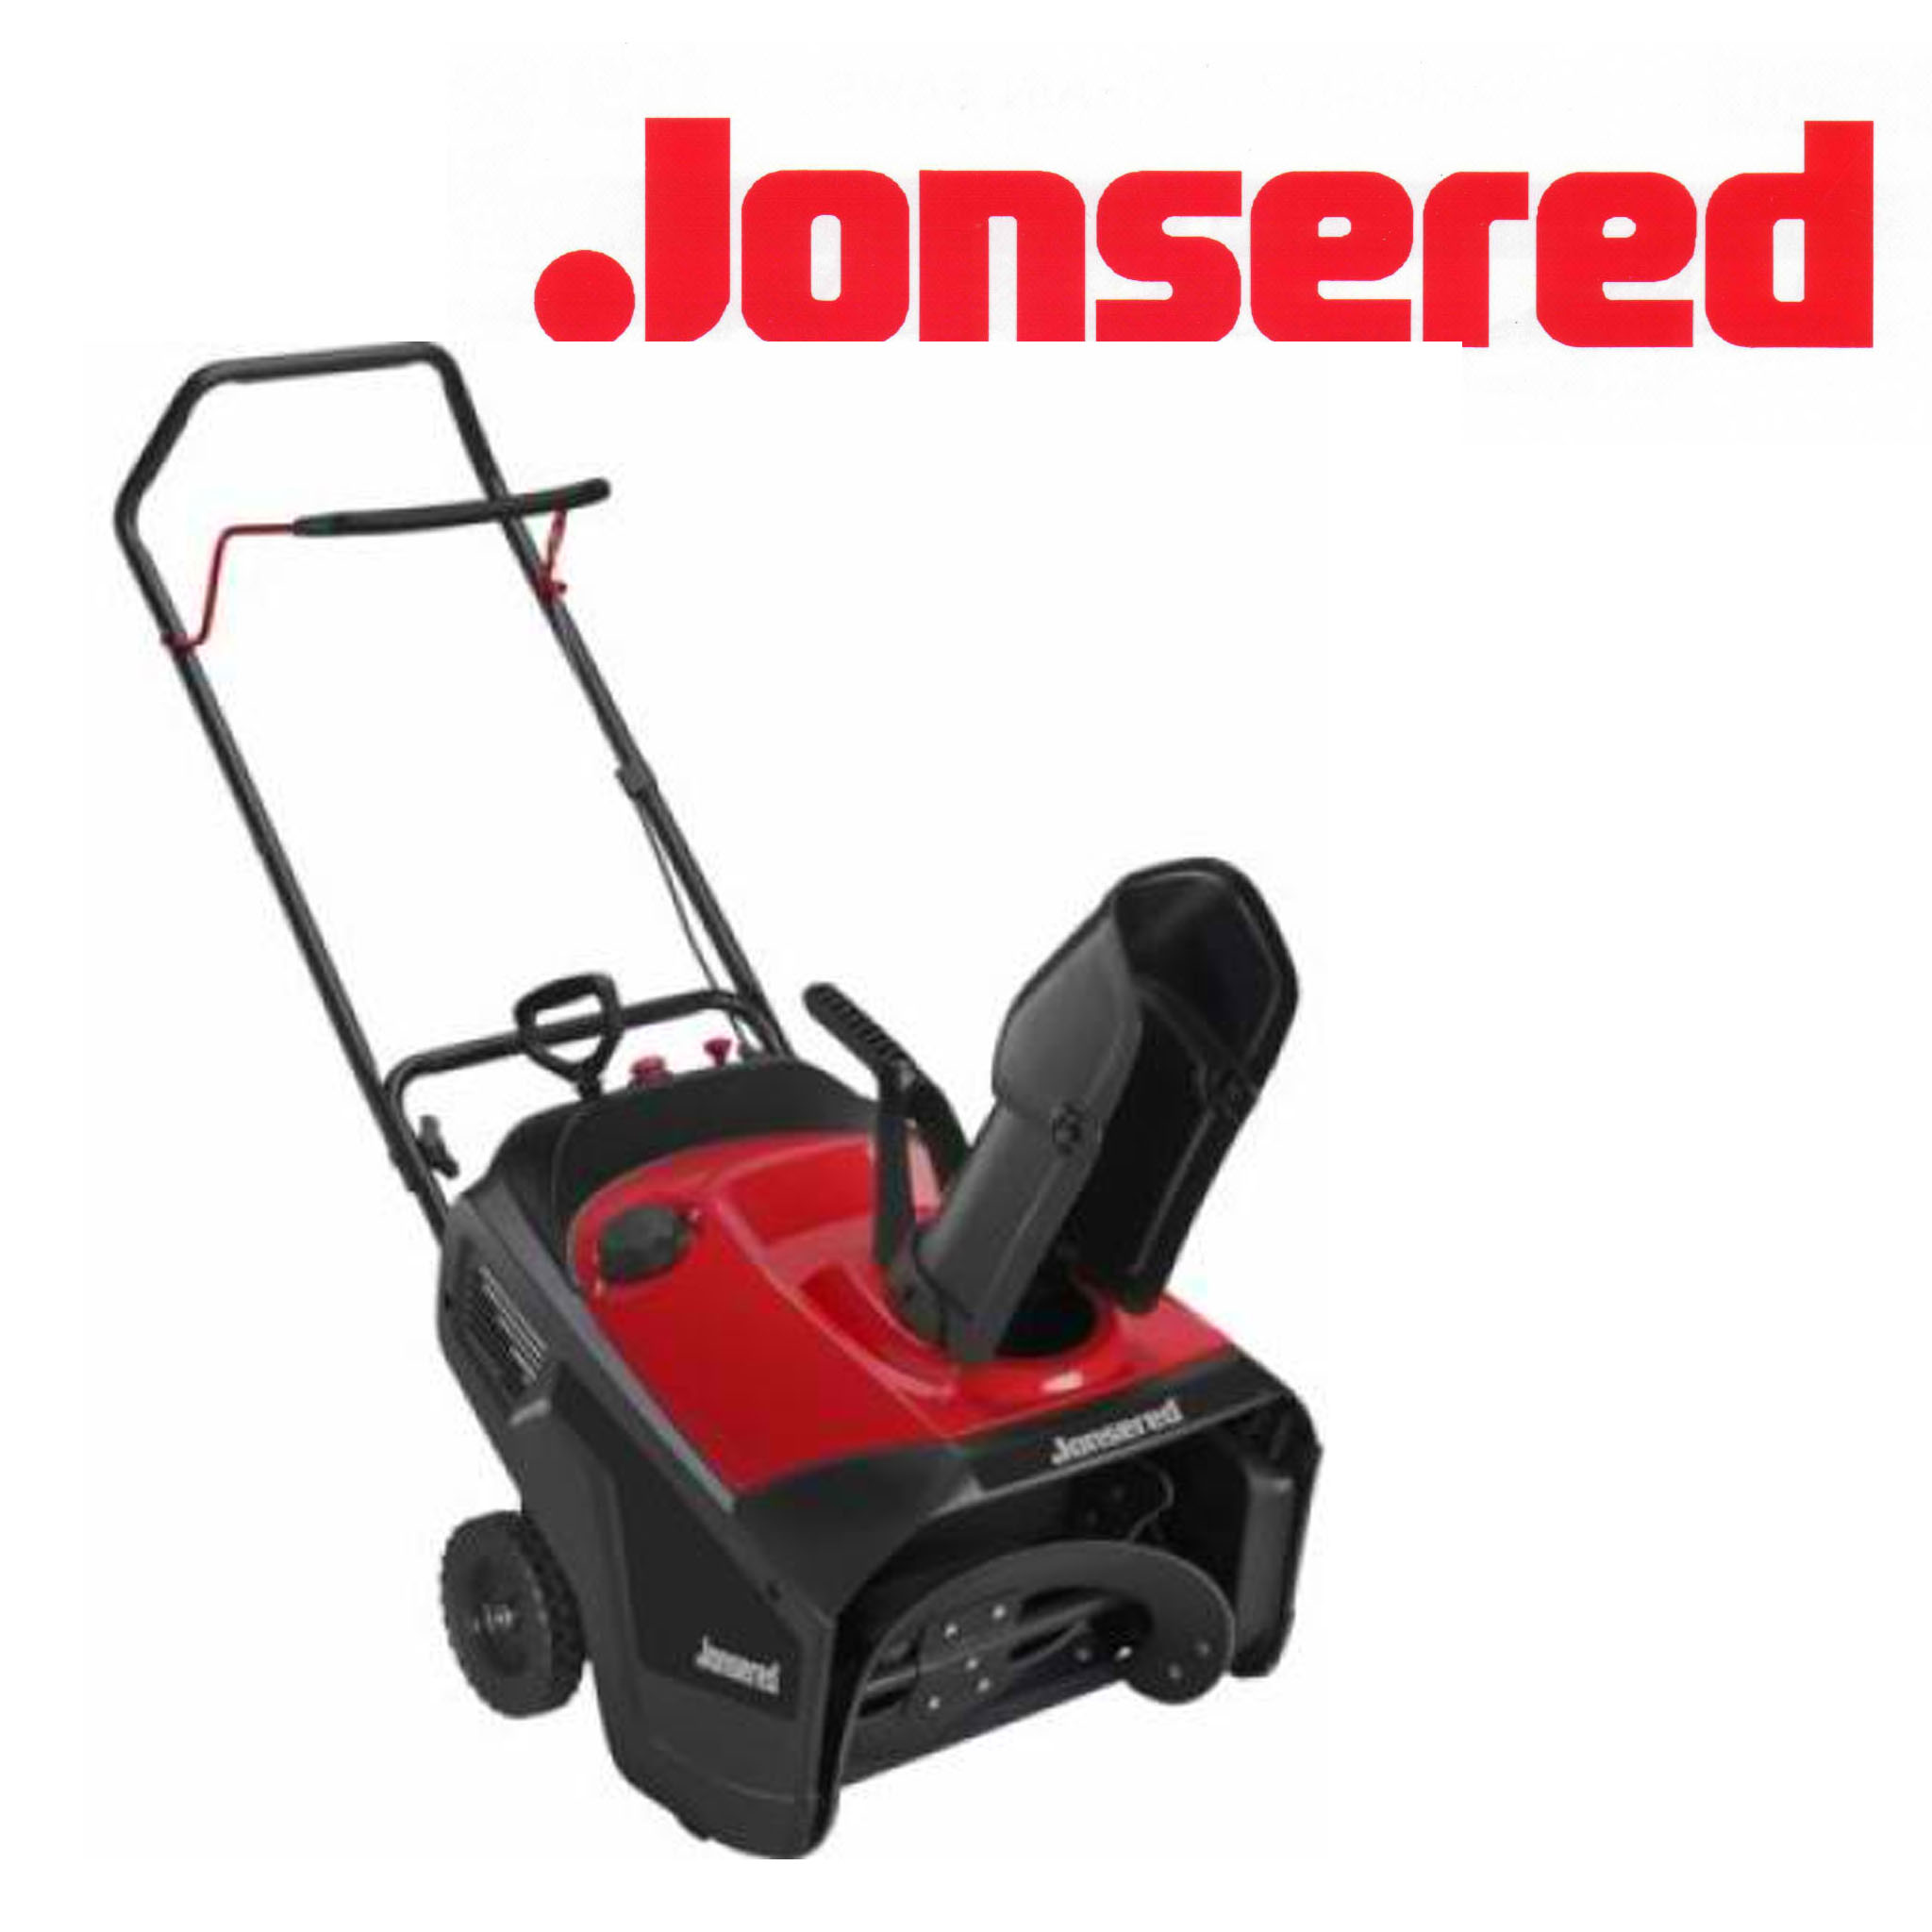 snider s outdoor power aurora ne nebraska lawn mowers